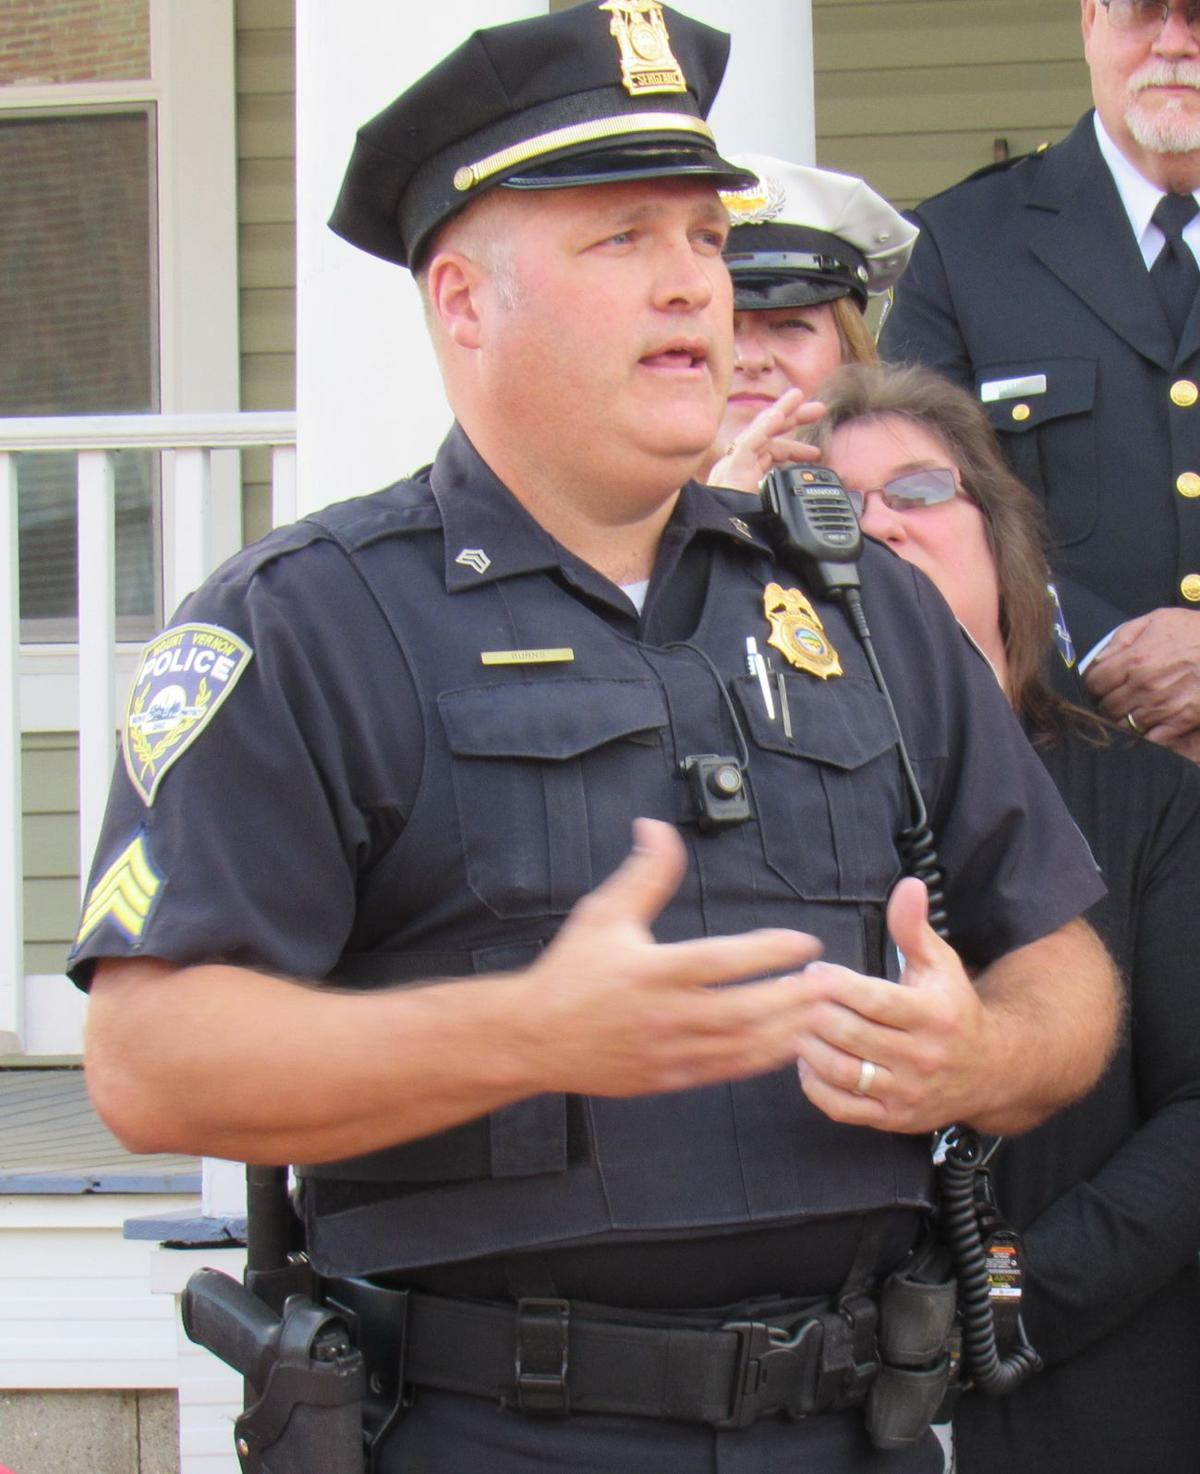 Sgt. Andy Burns